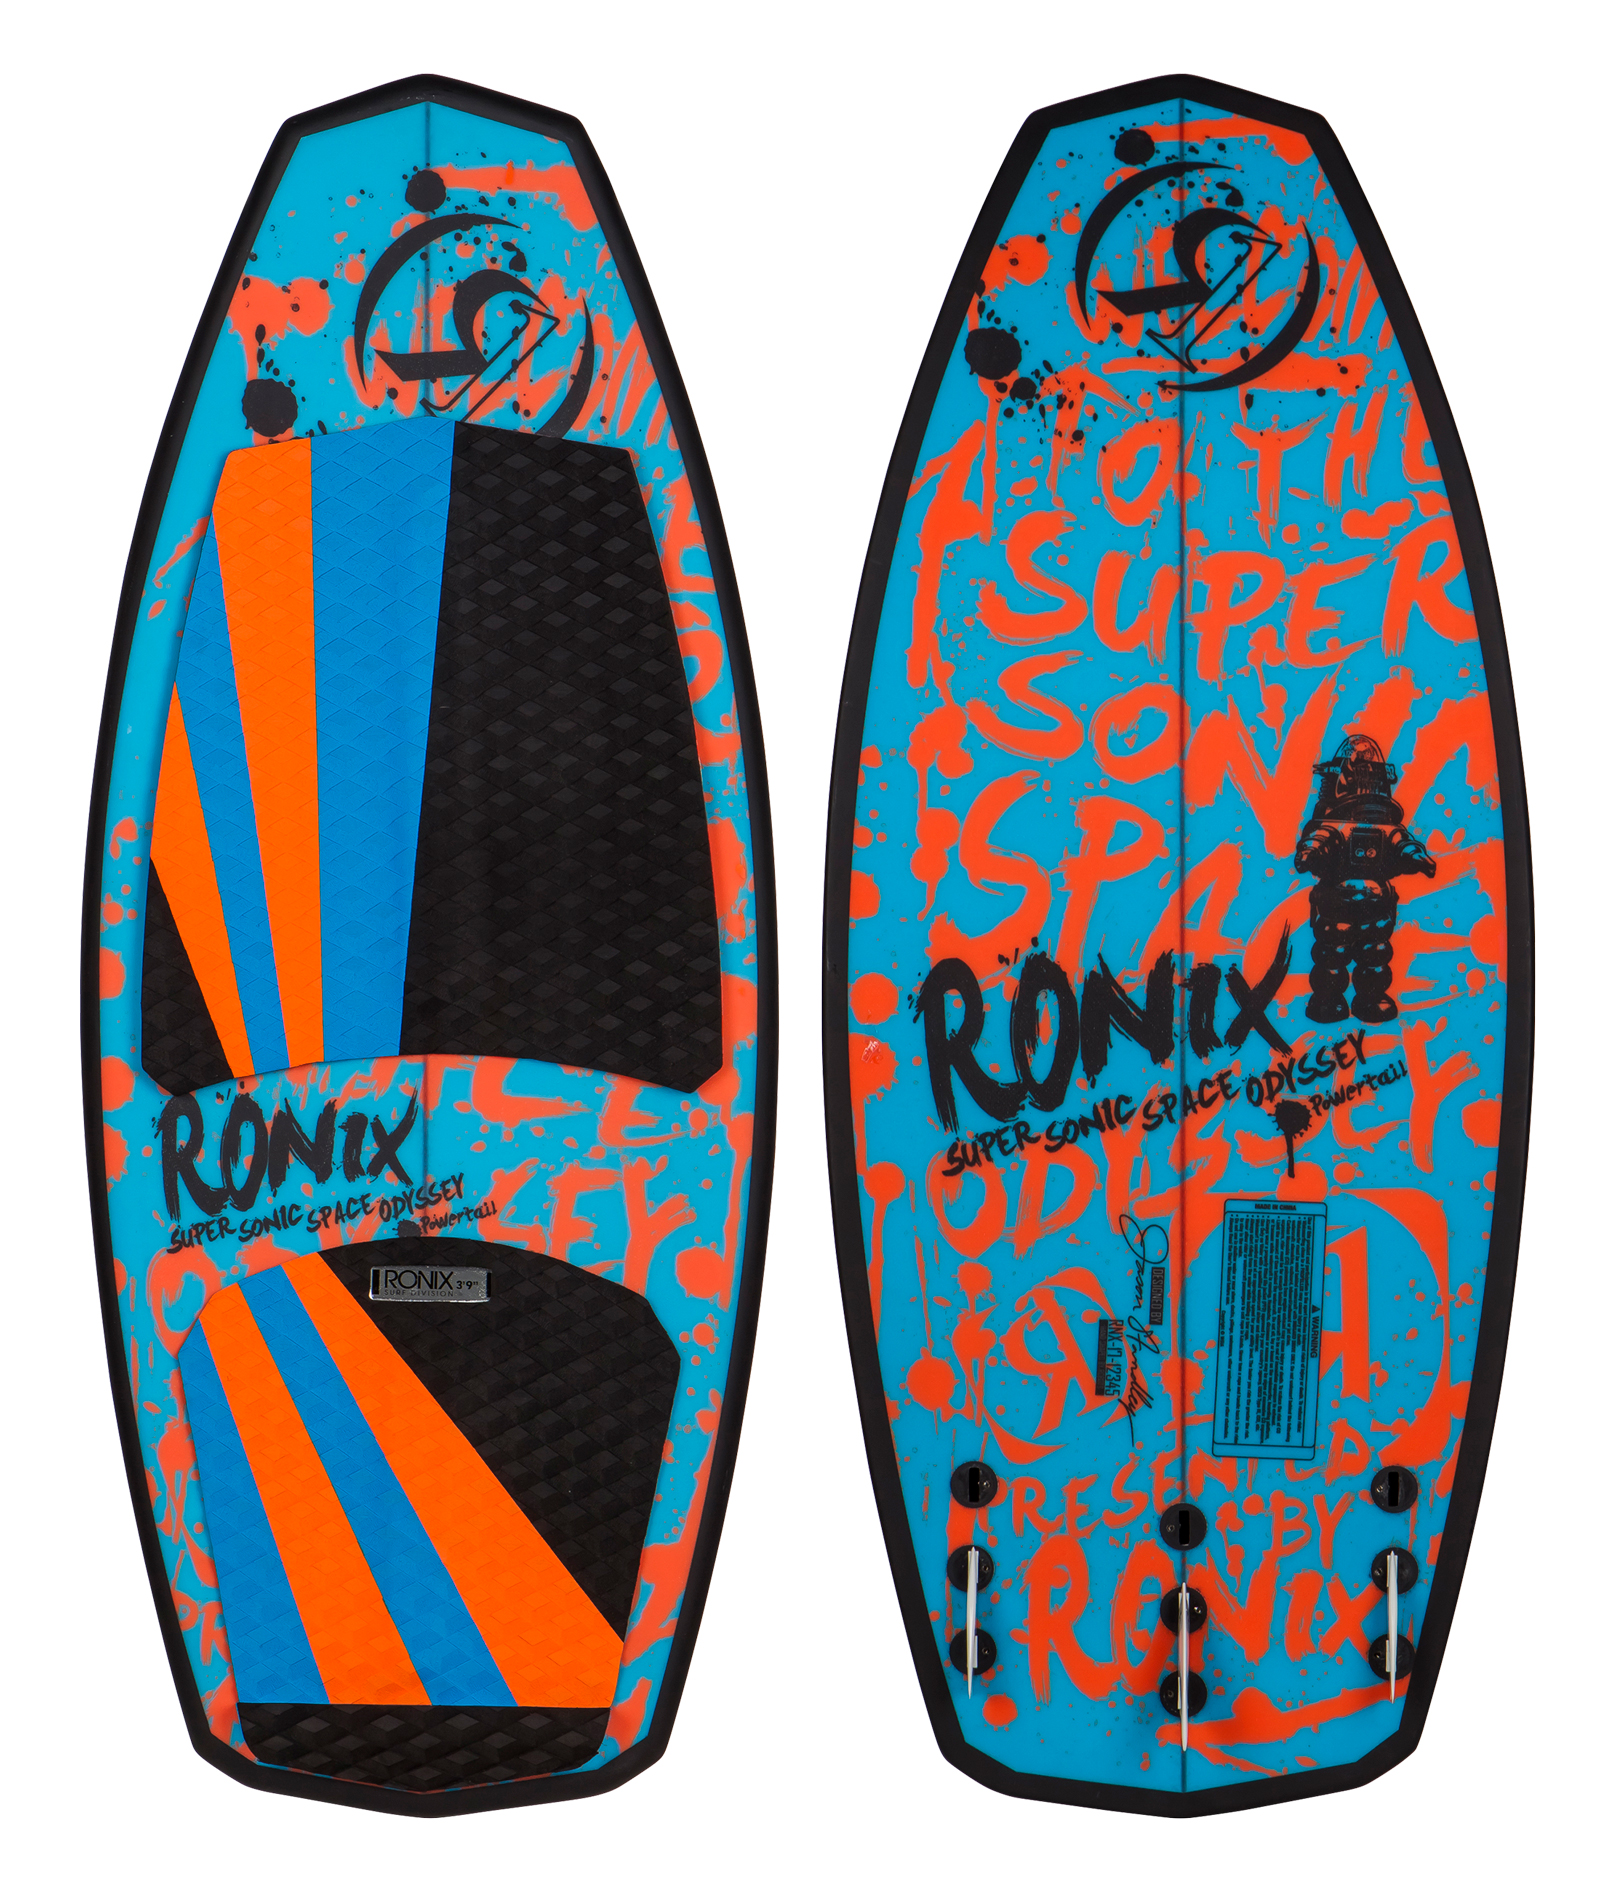 SUPER SONIC SPACE ODYSSEY POWERTAIL 3'9'' JR. WAKESURFER RONIX 2017